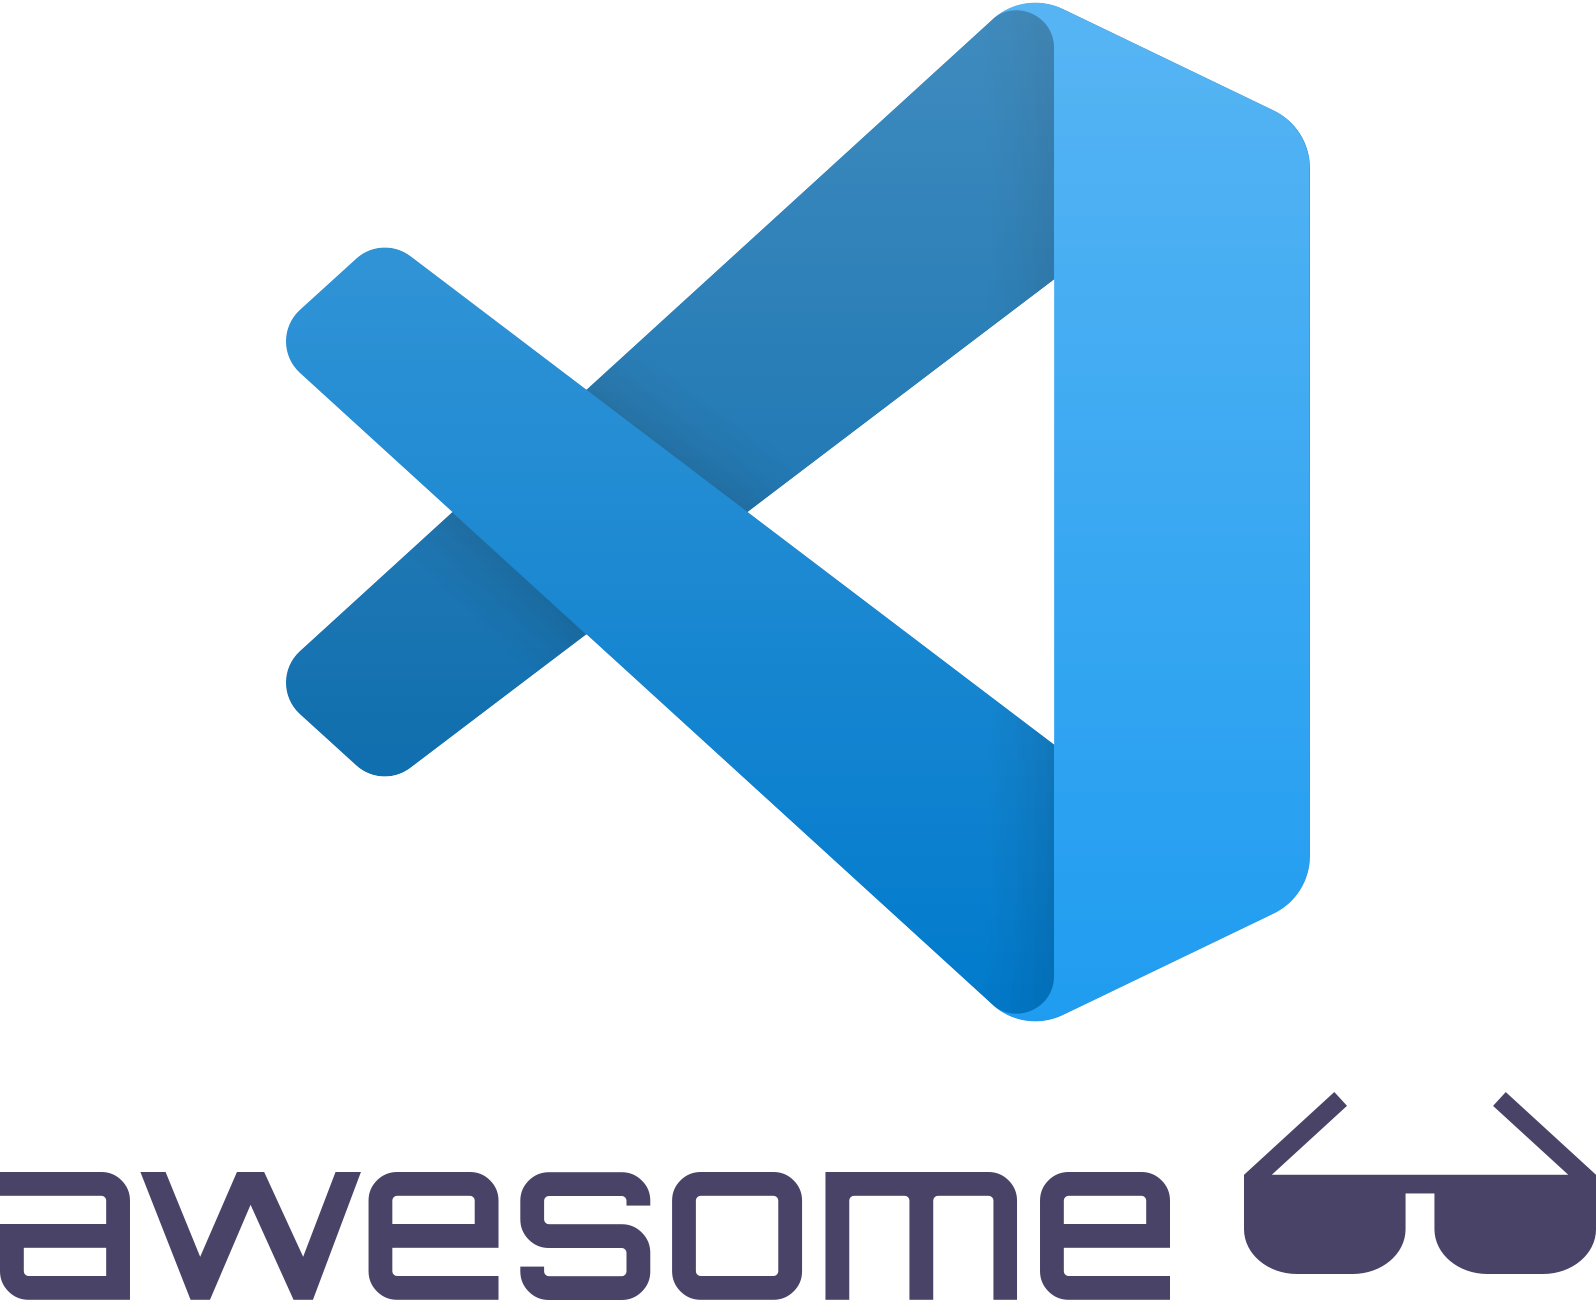 awesome-vscode-logo.png